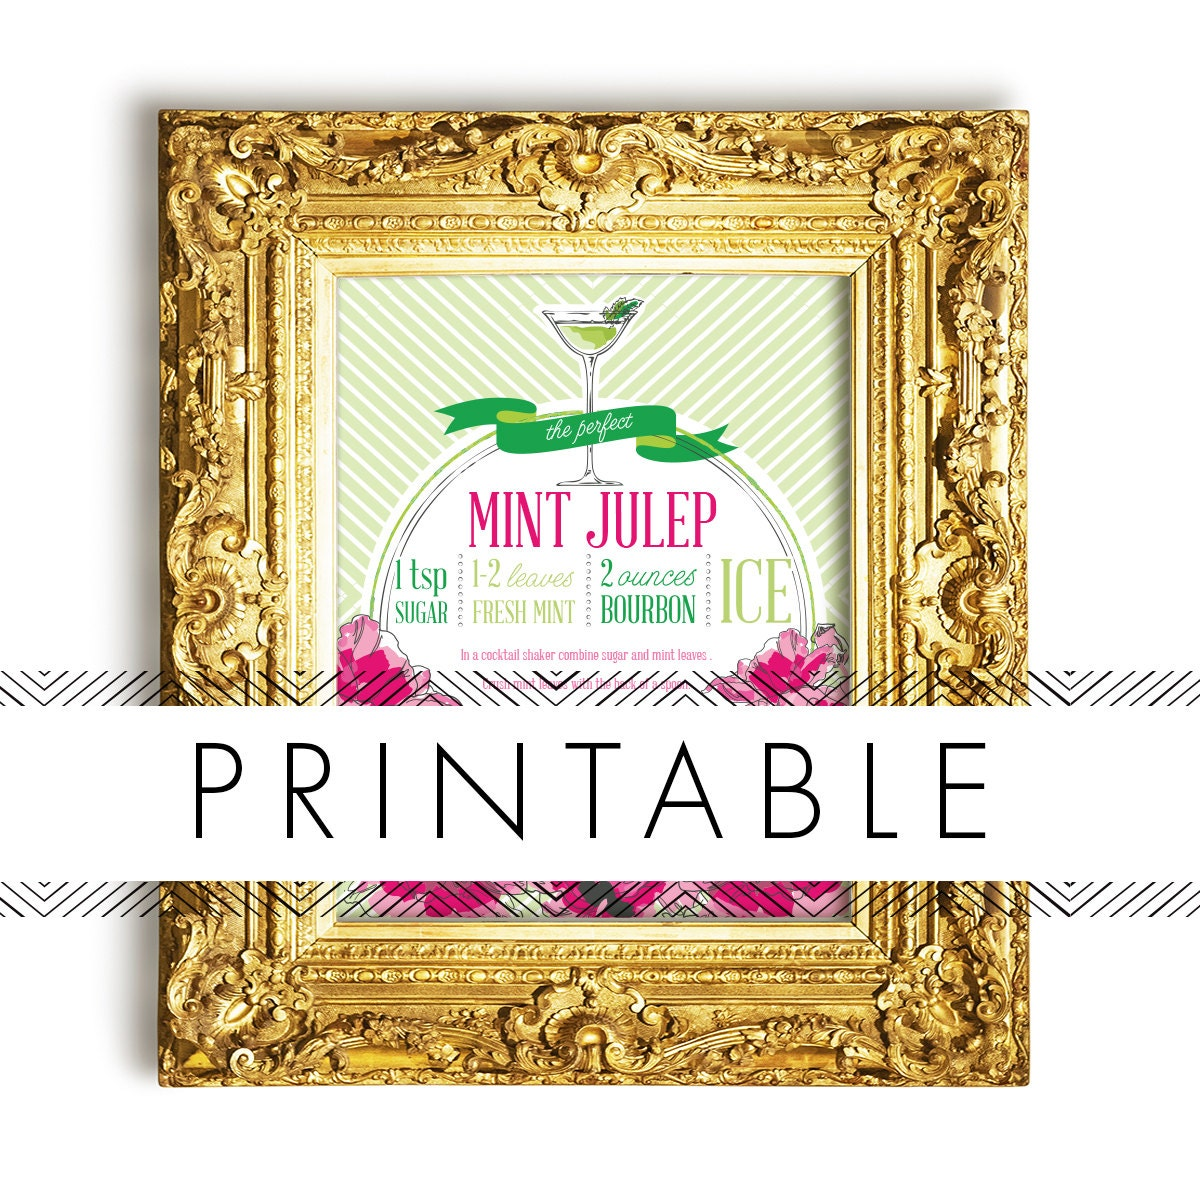 12 Cool Kentucky Derby Inspired Home Decor Ideas: Derby Mint Julep Bar Signs Printable In Pink